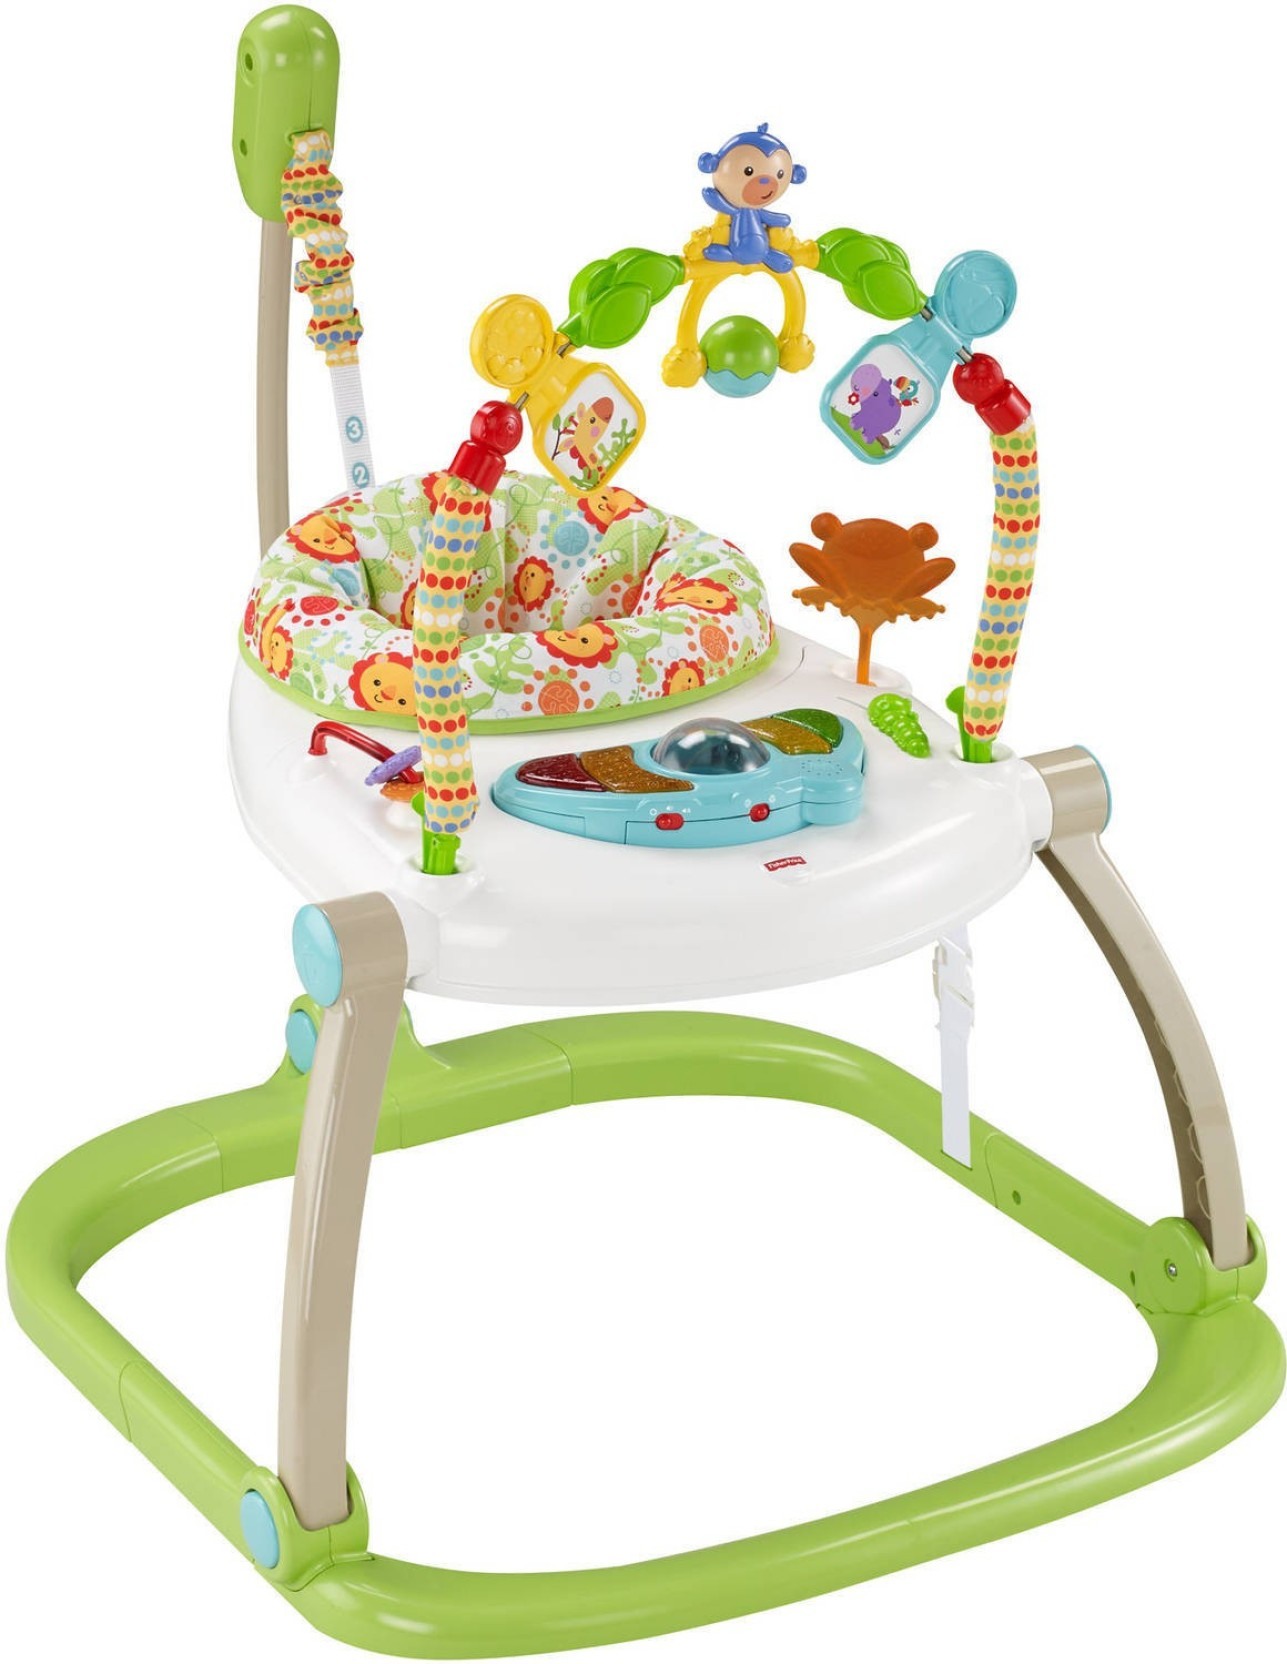 43f2170a3 Fisher-Price Rainforest Friends Spacesaver Jumperoo CHN44 Price in ...